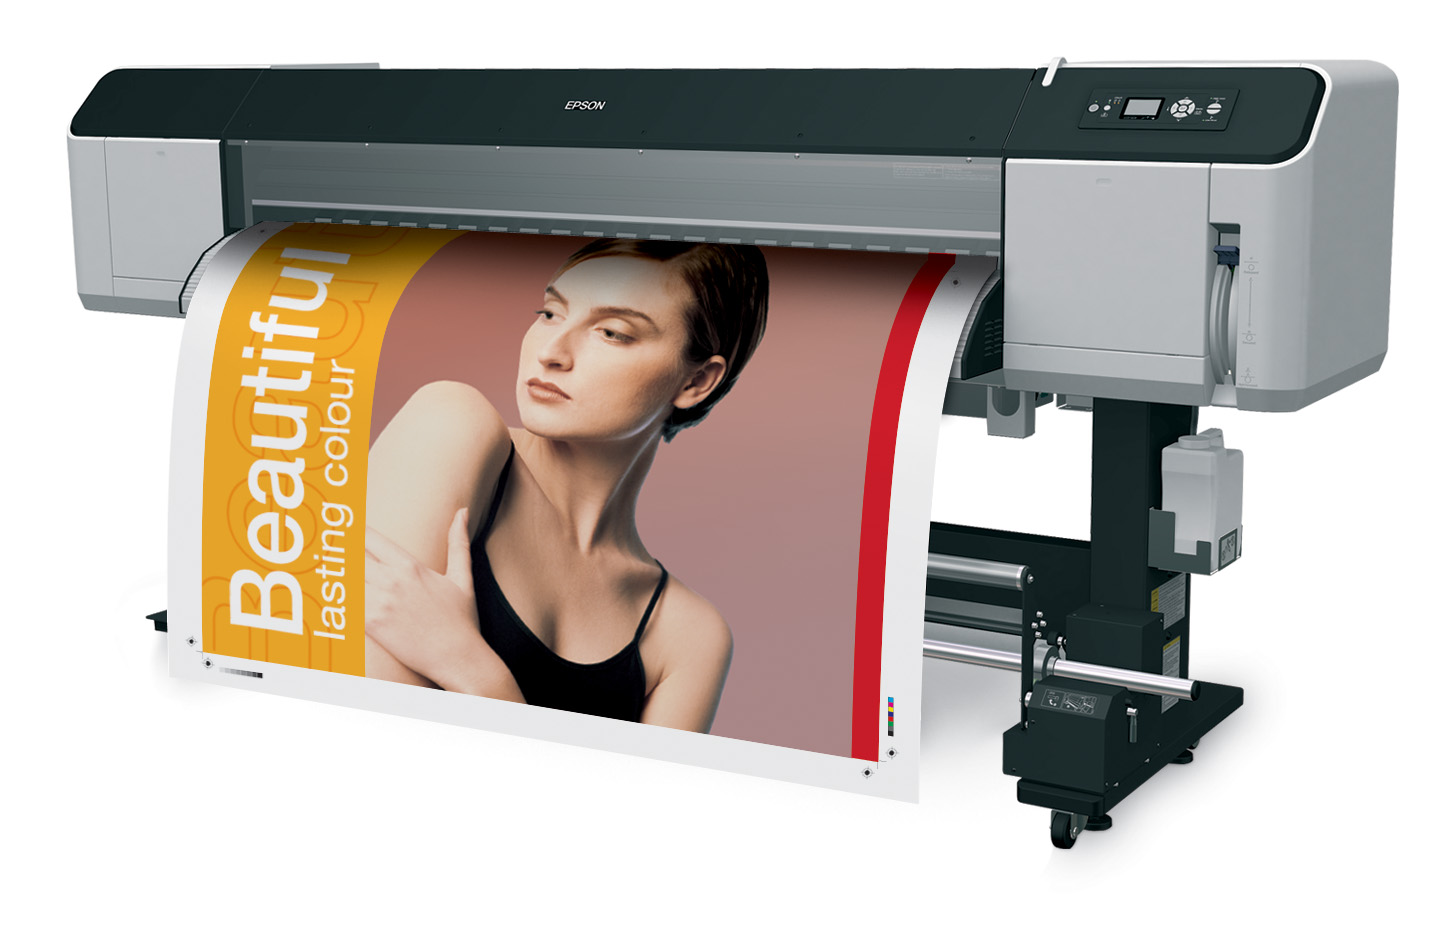 Large Format Printing at On Track Printing Oceanside California, T-shirt Factory sign printing and t-shirt printing, letterhead and business printing in san diego, north county, oceanside printing